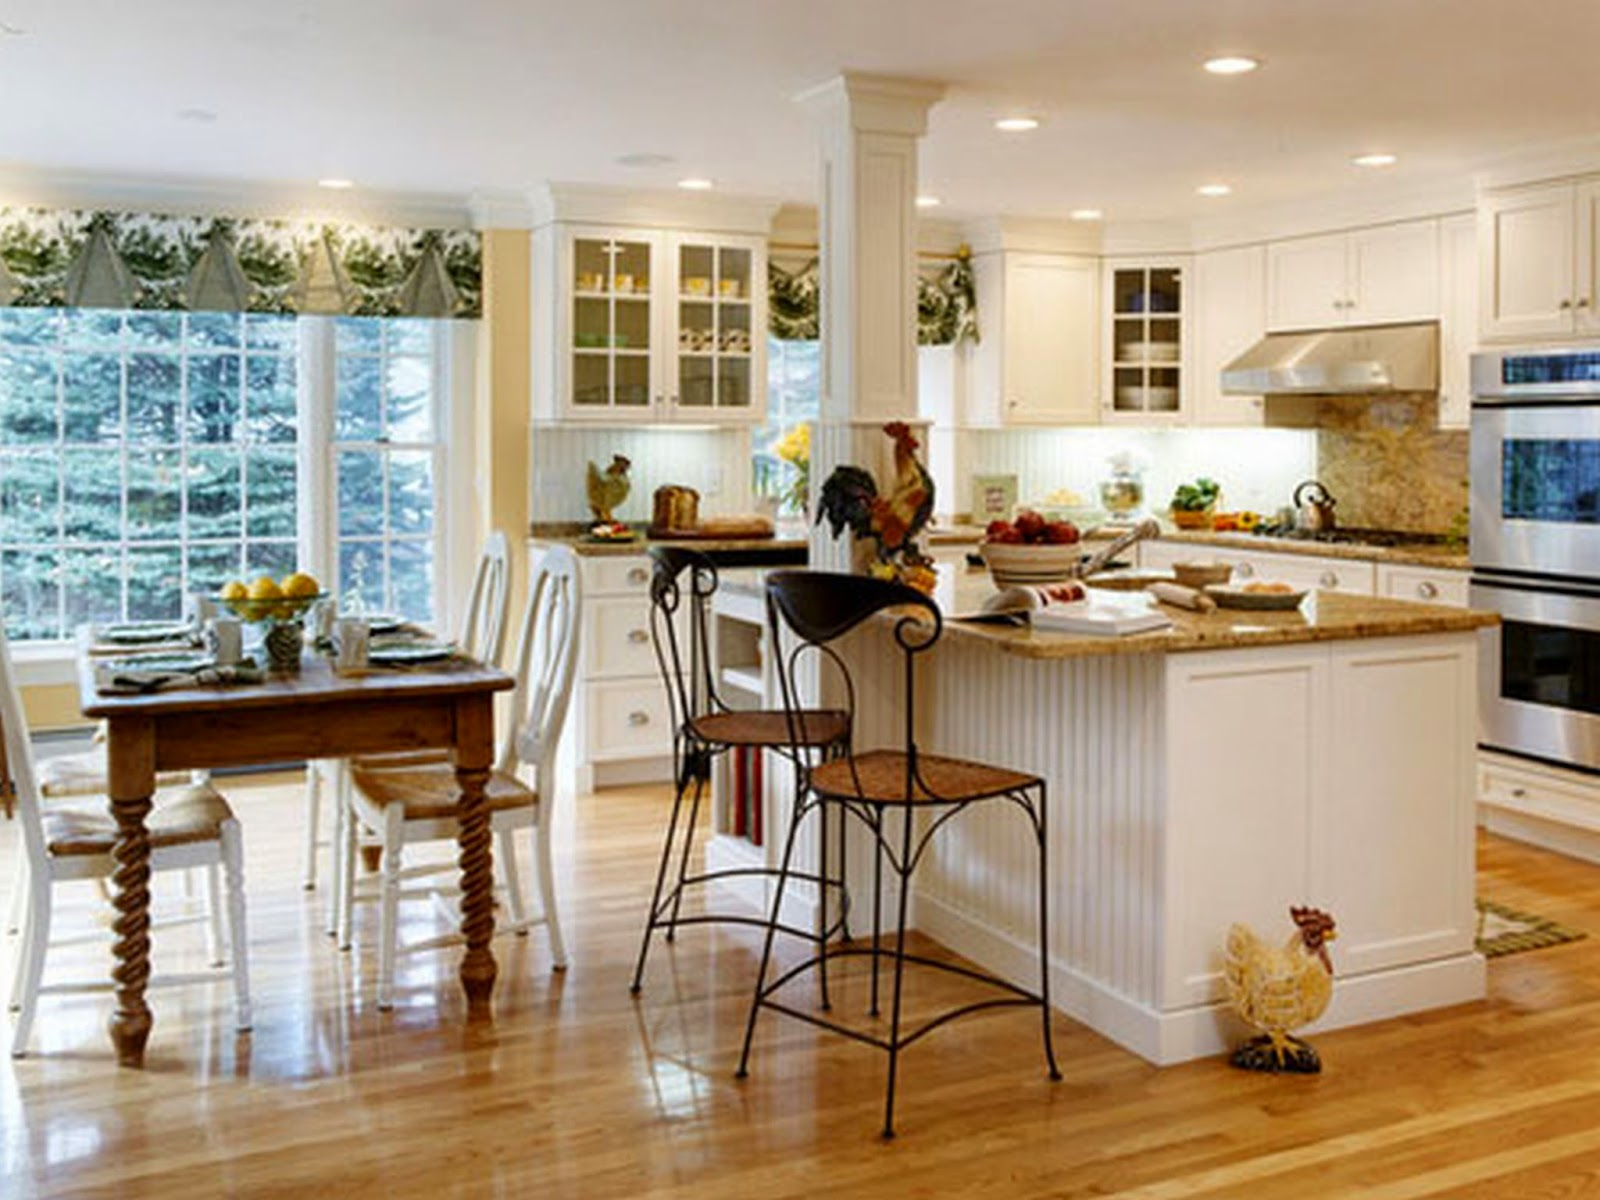 Kitchen Island And Stools Set